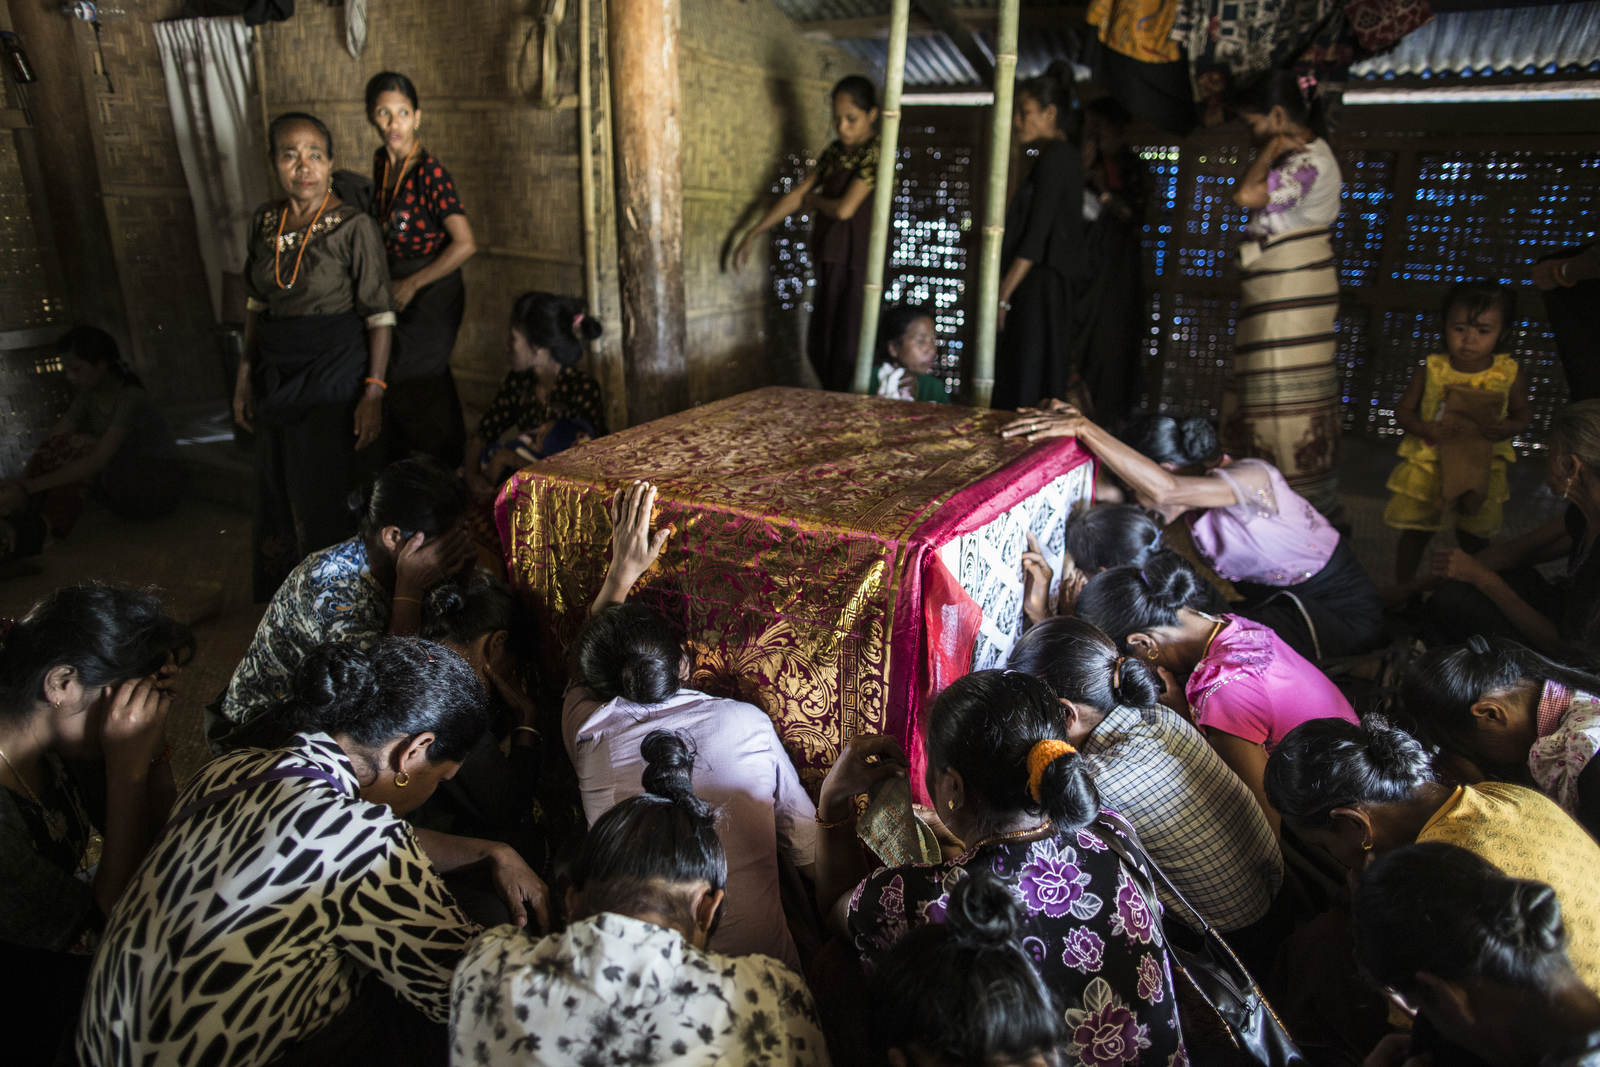 Rapine Remikato died a year before his funeral in Sumba, a remote island in Eastern Indonesia. The time in between death and the funeral allows family members to plan for the expensive procession but also for a more gradual goodbye.